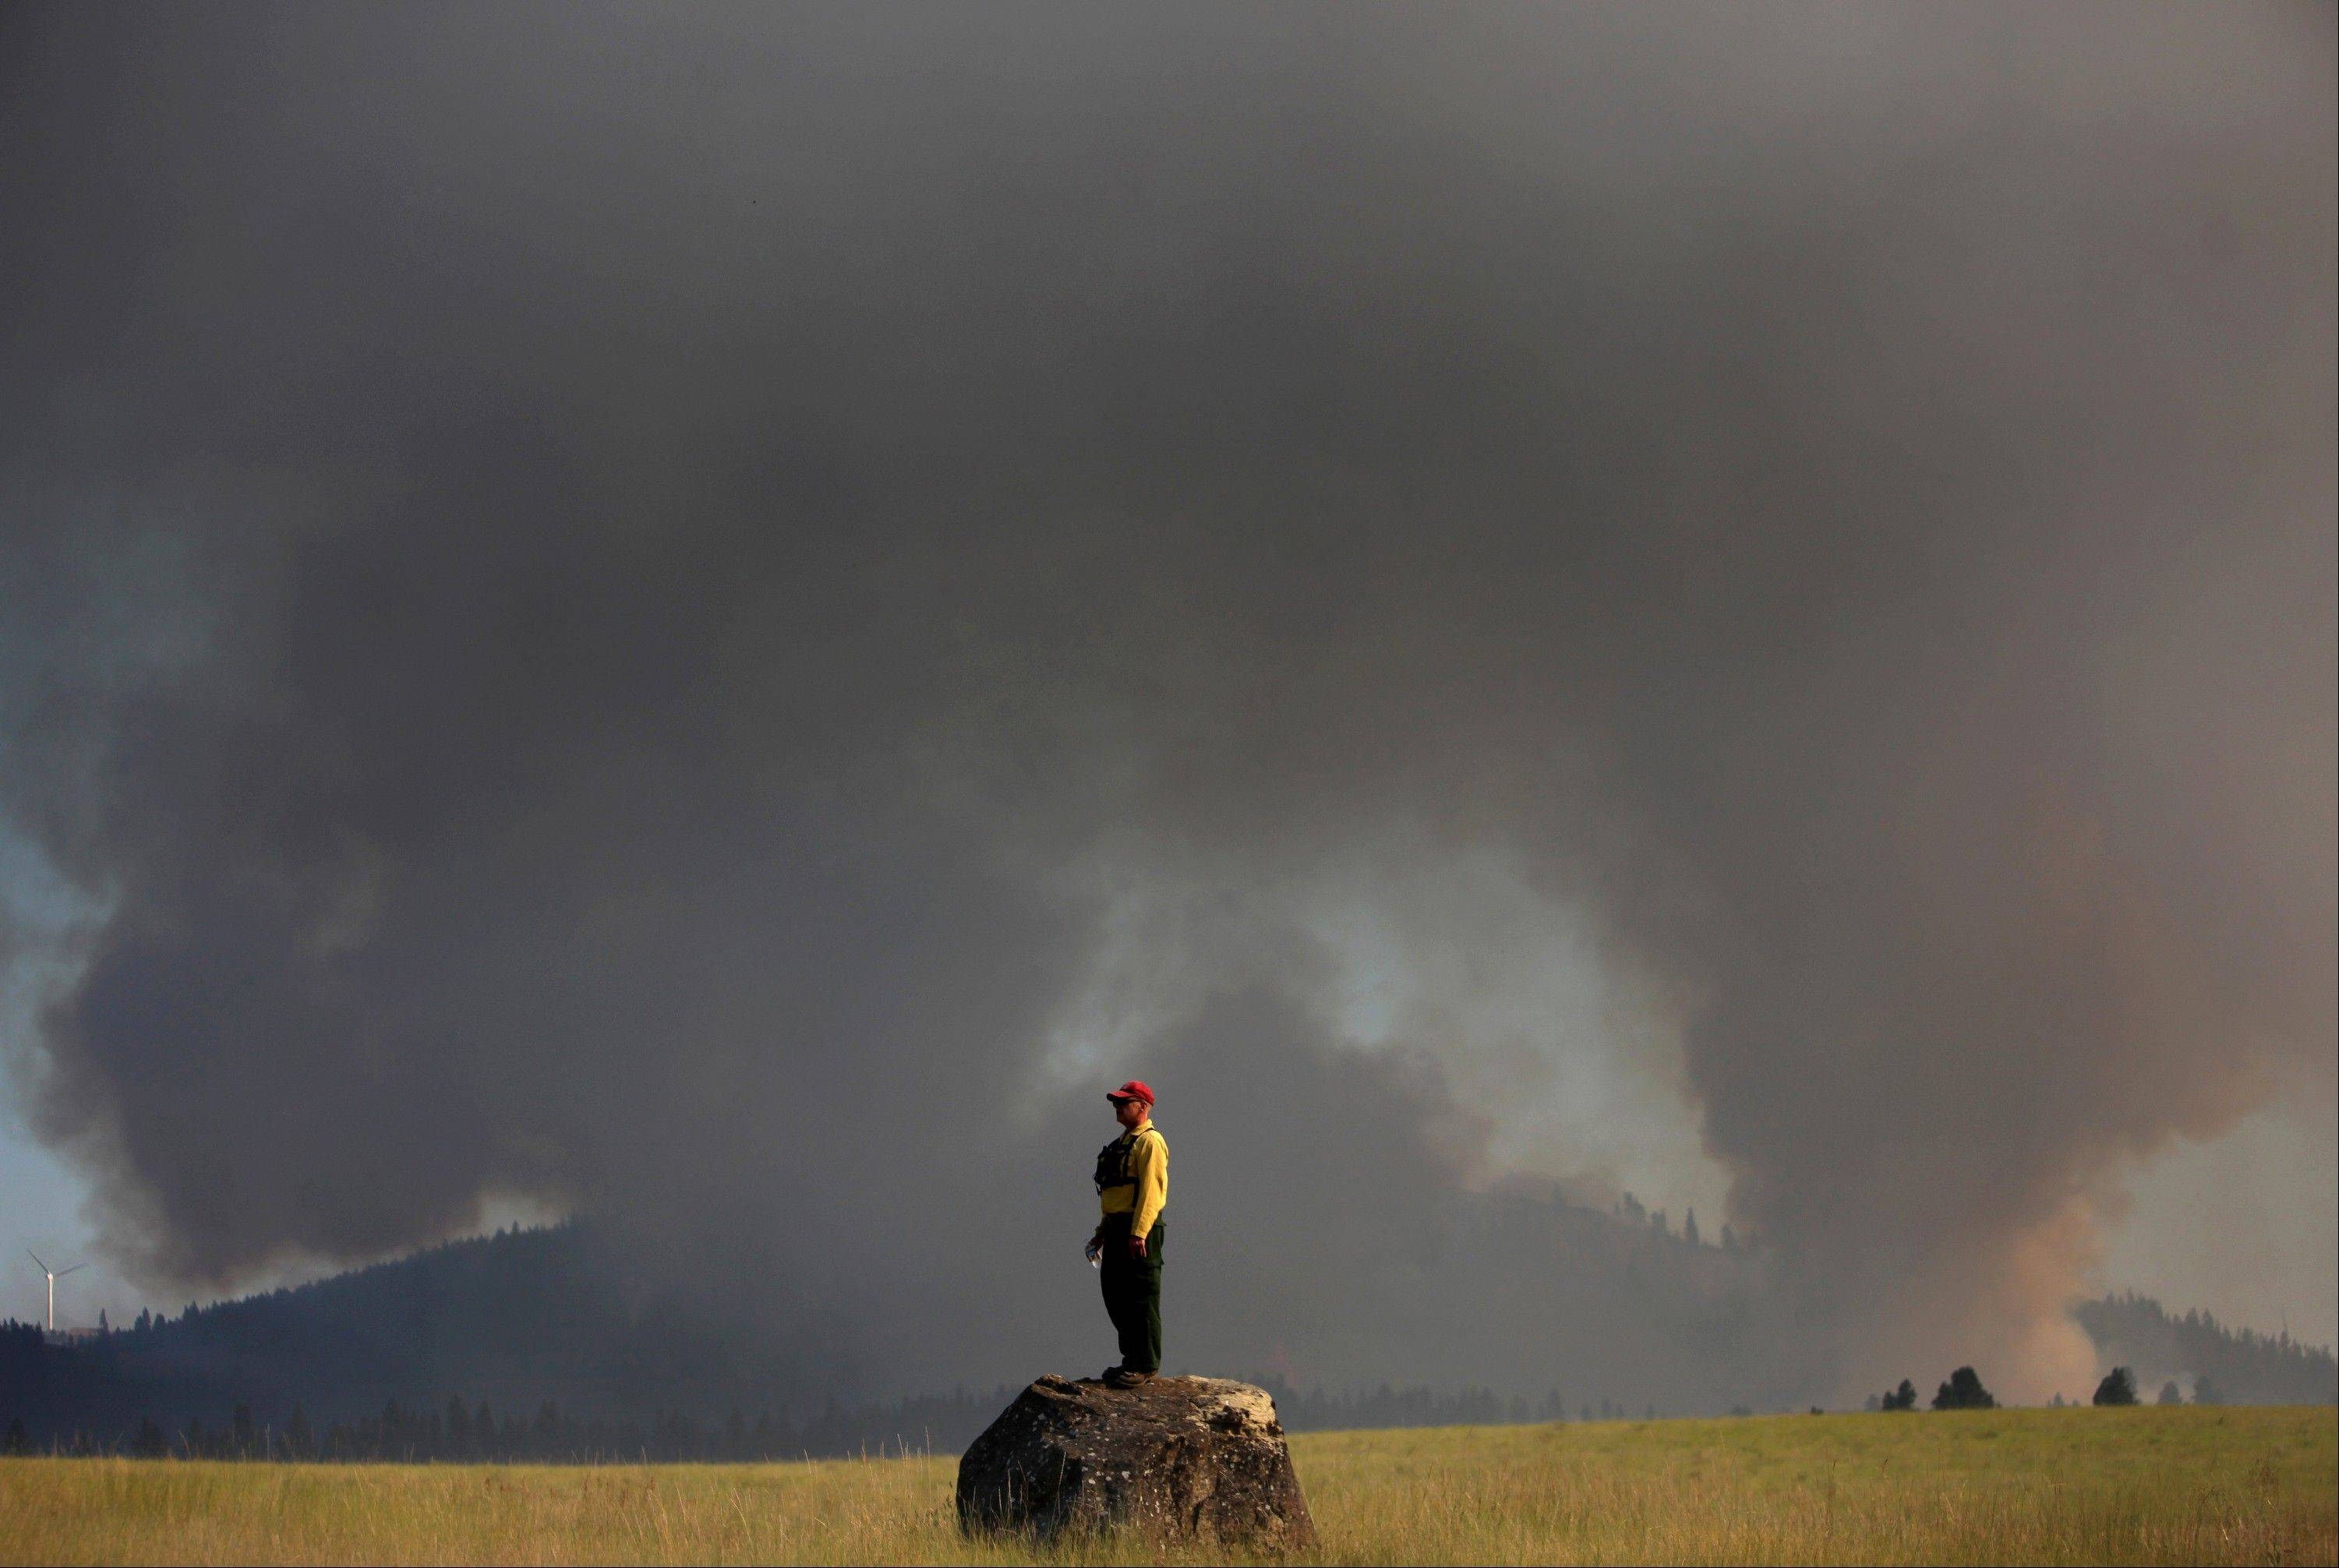 Marcus Johns with the Department of Natural Resources, watches as the Taylor Bridge Fire burns on the south side of Highway 970 near Swauk Prairie Road on Wednesday, Aug. 15, 2012 near Cle Elum, Wash. The Taylor Bridge Fire has forced hundreds to evacuate and has burned dozens of homes.